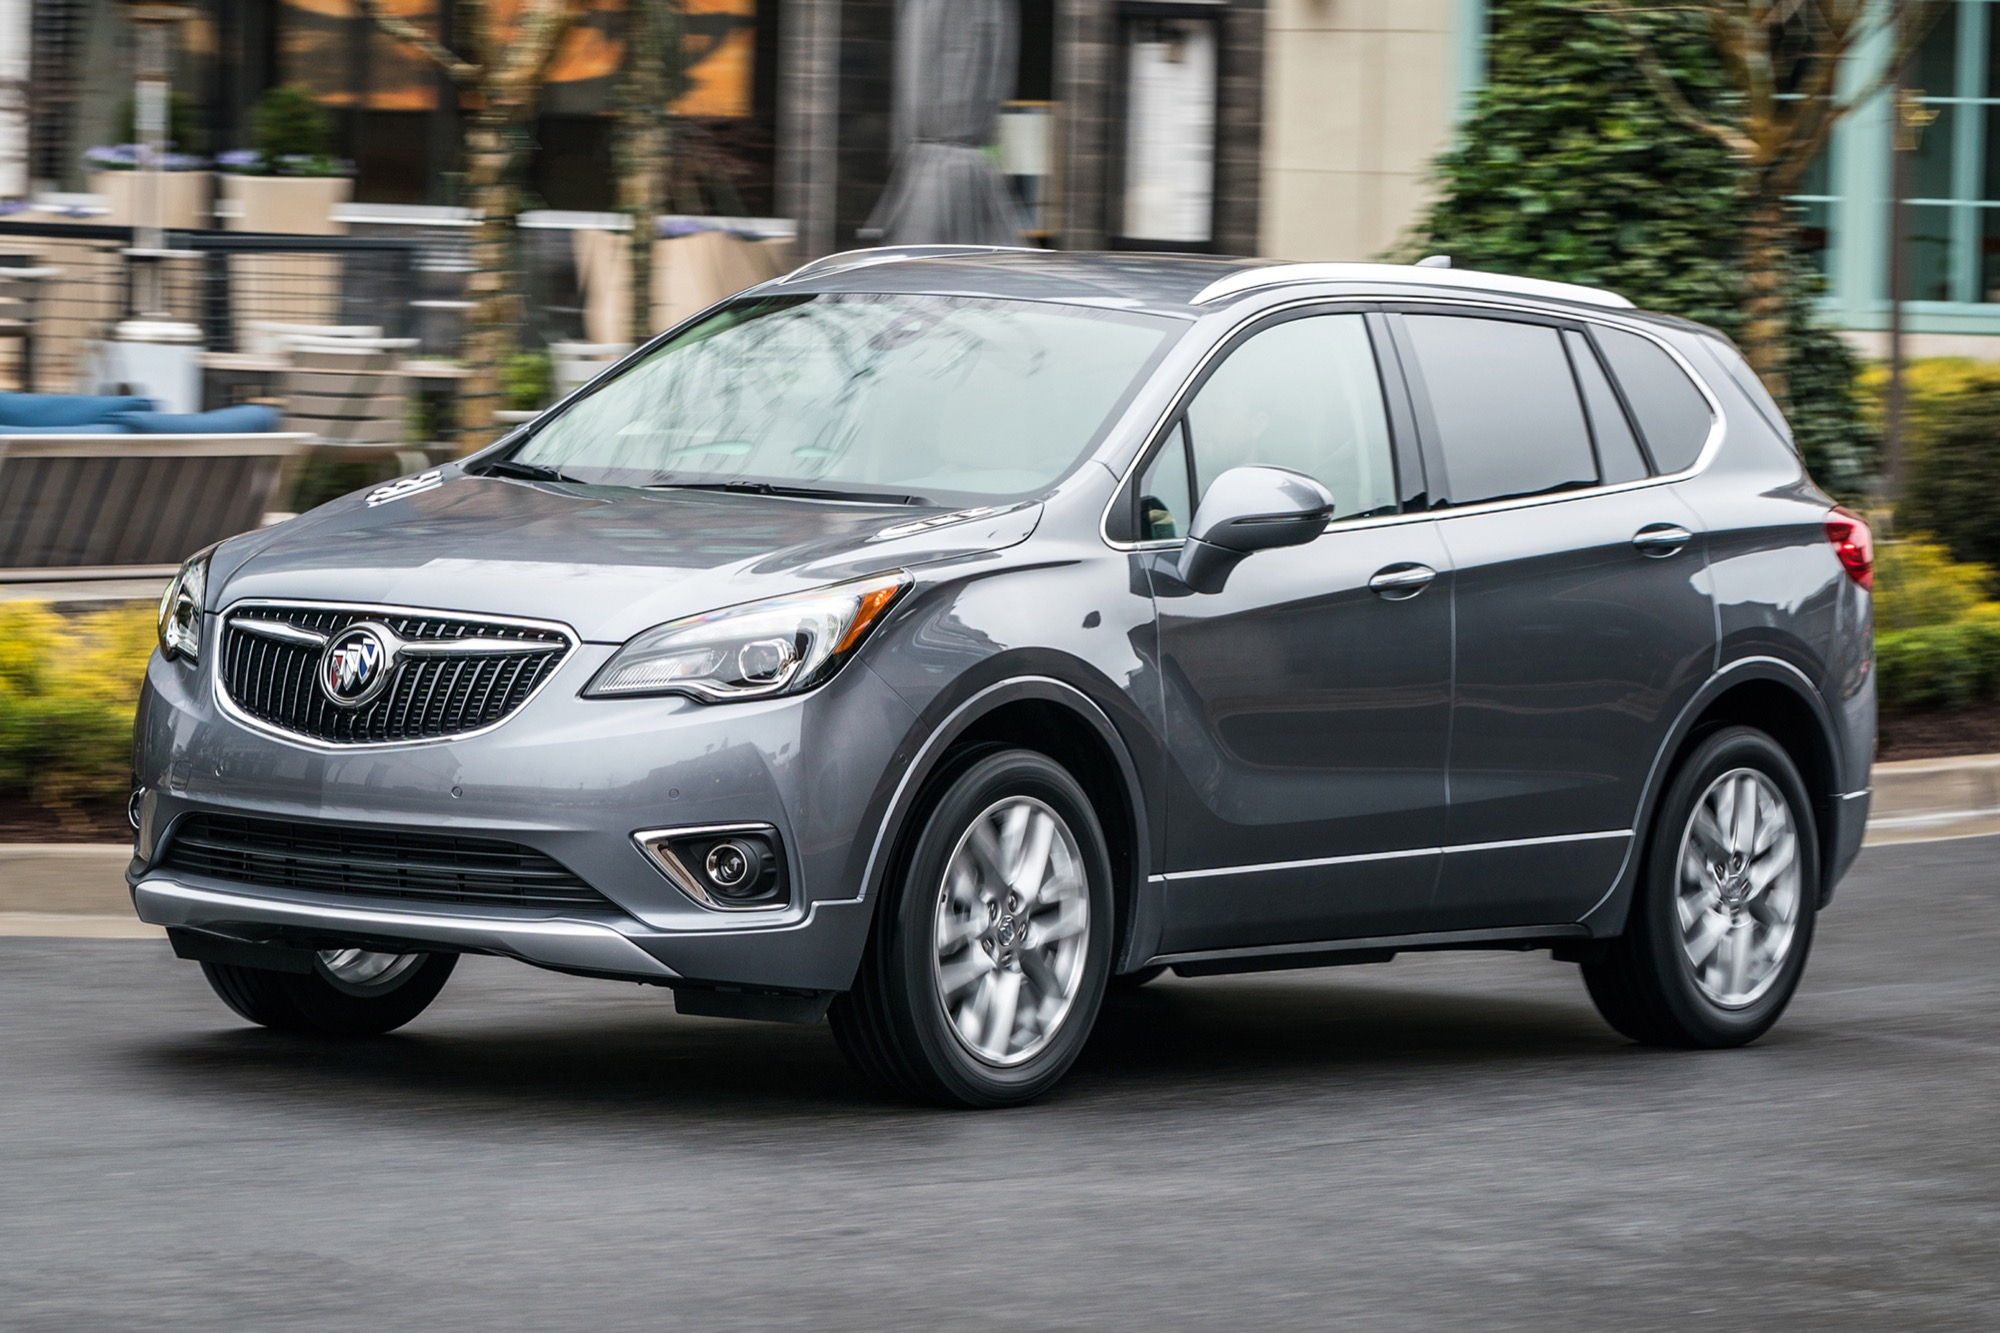 Buick Envision Discount Totals $5,000 February 2020 | Gm 2021 Buick Envision Hp, Incentives, Infotainment Manual